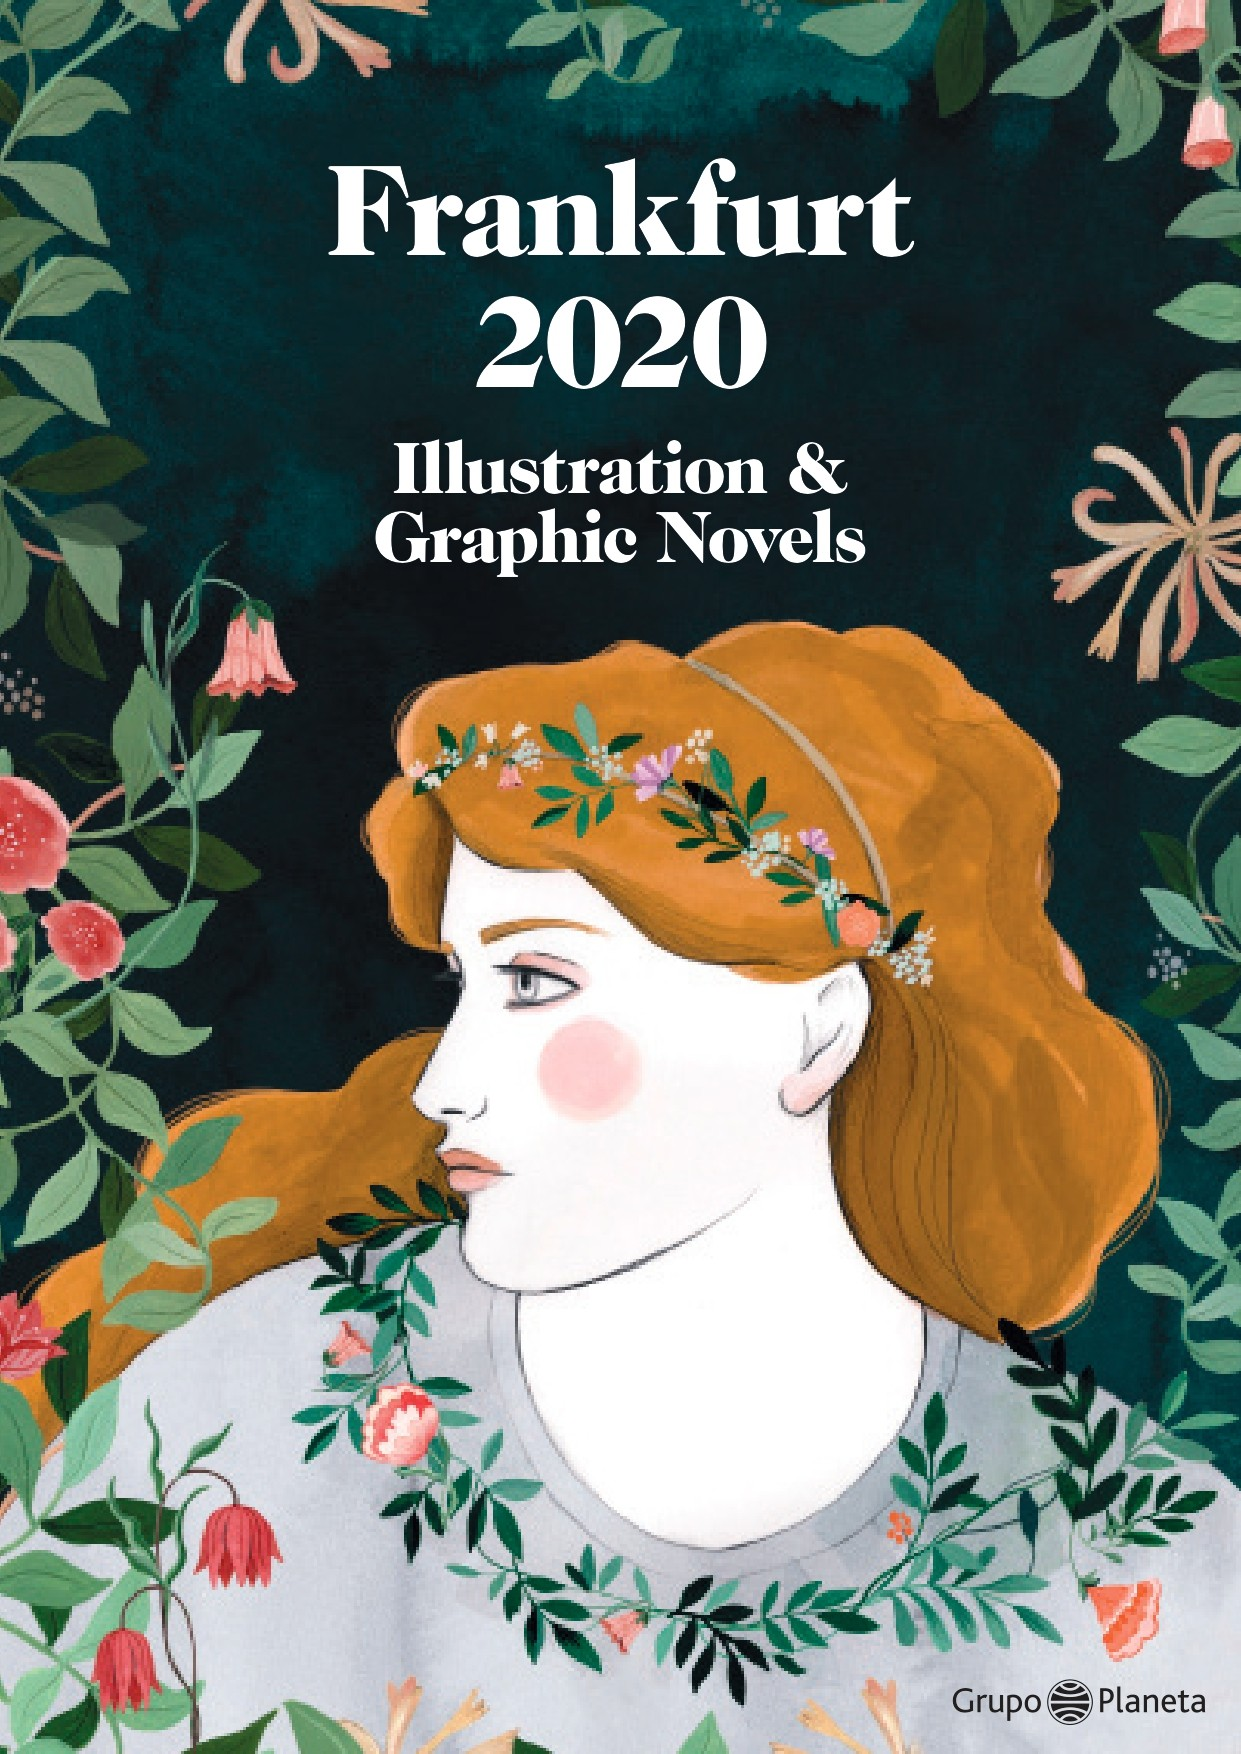 Frankfurt 2020 Illustration & Graphic Novels